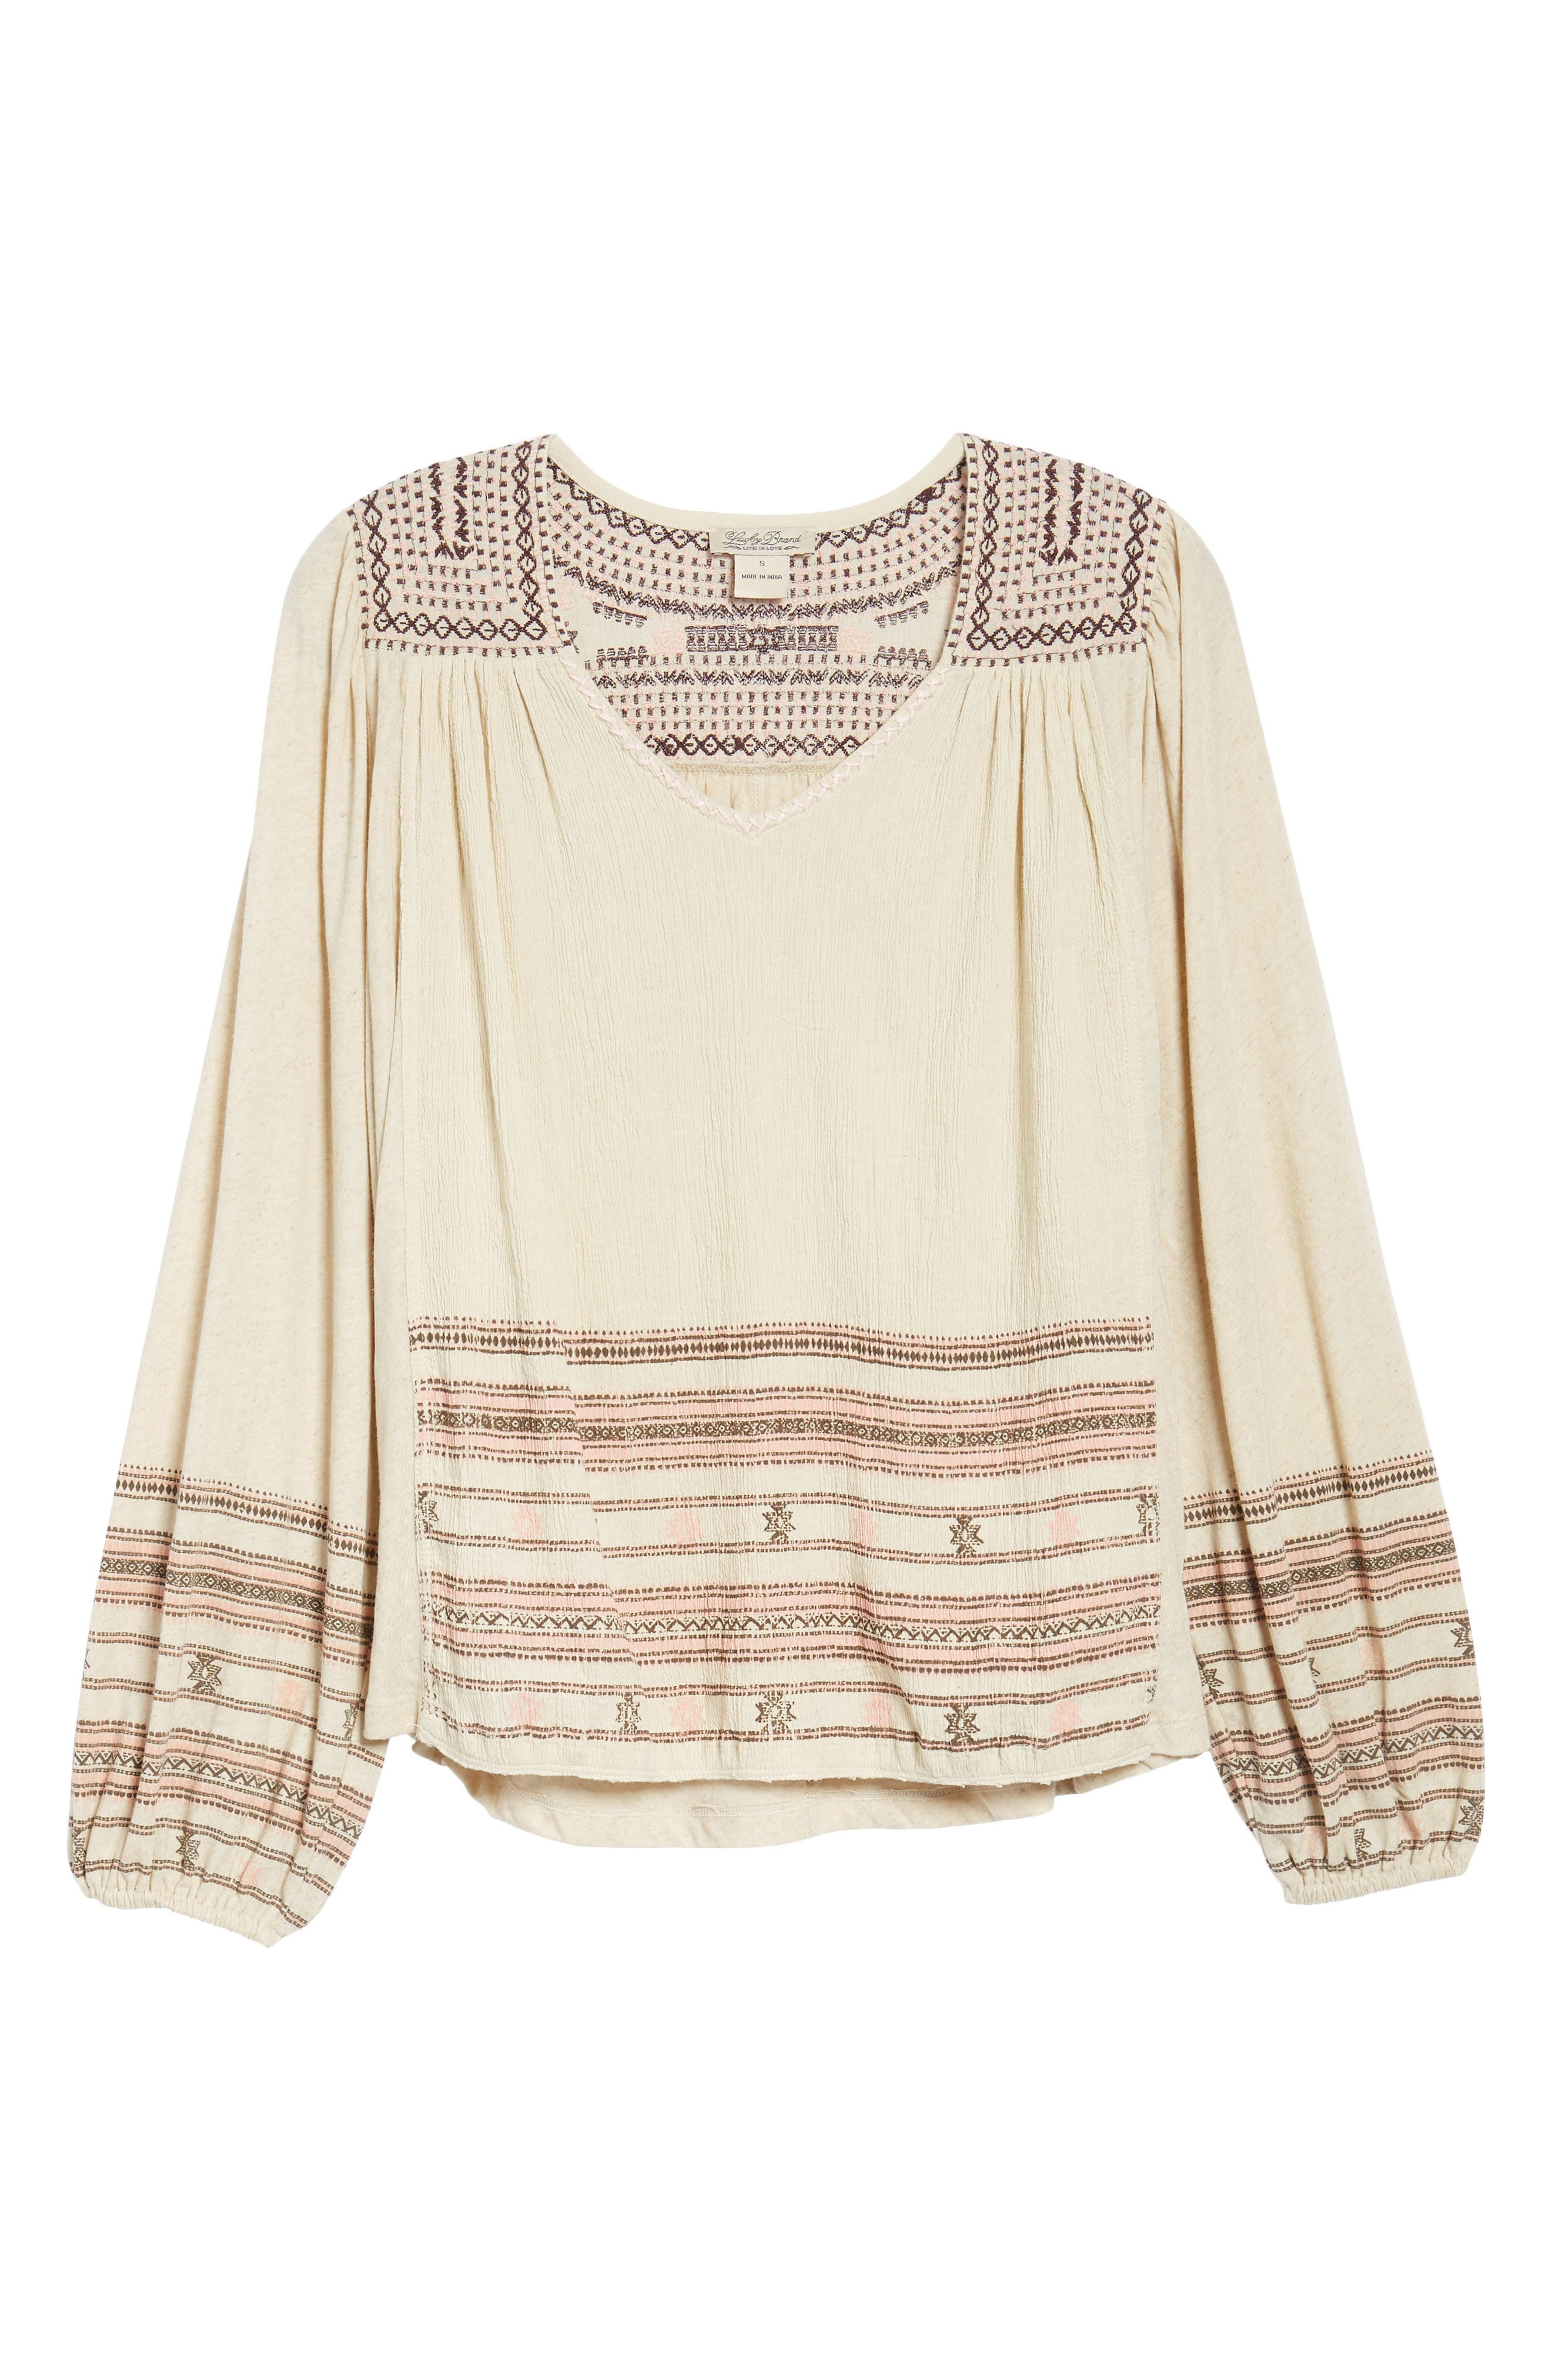 Market Embroidered Peasant Blouse,                             Alternate thumbnail 6, color,                             900